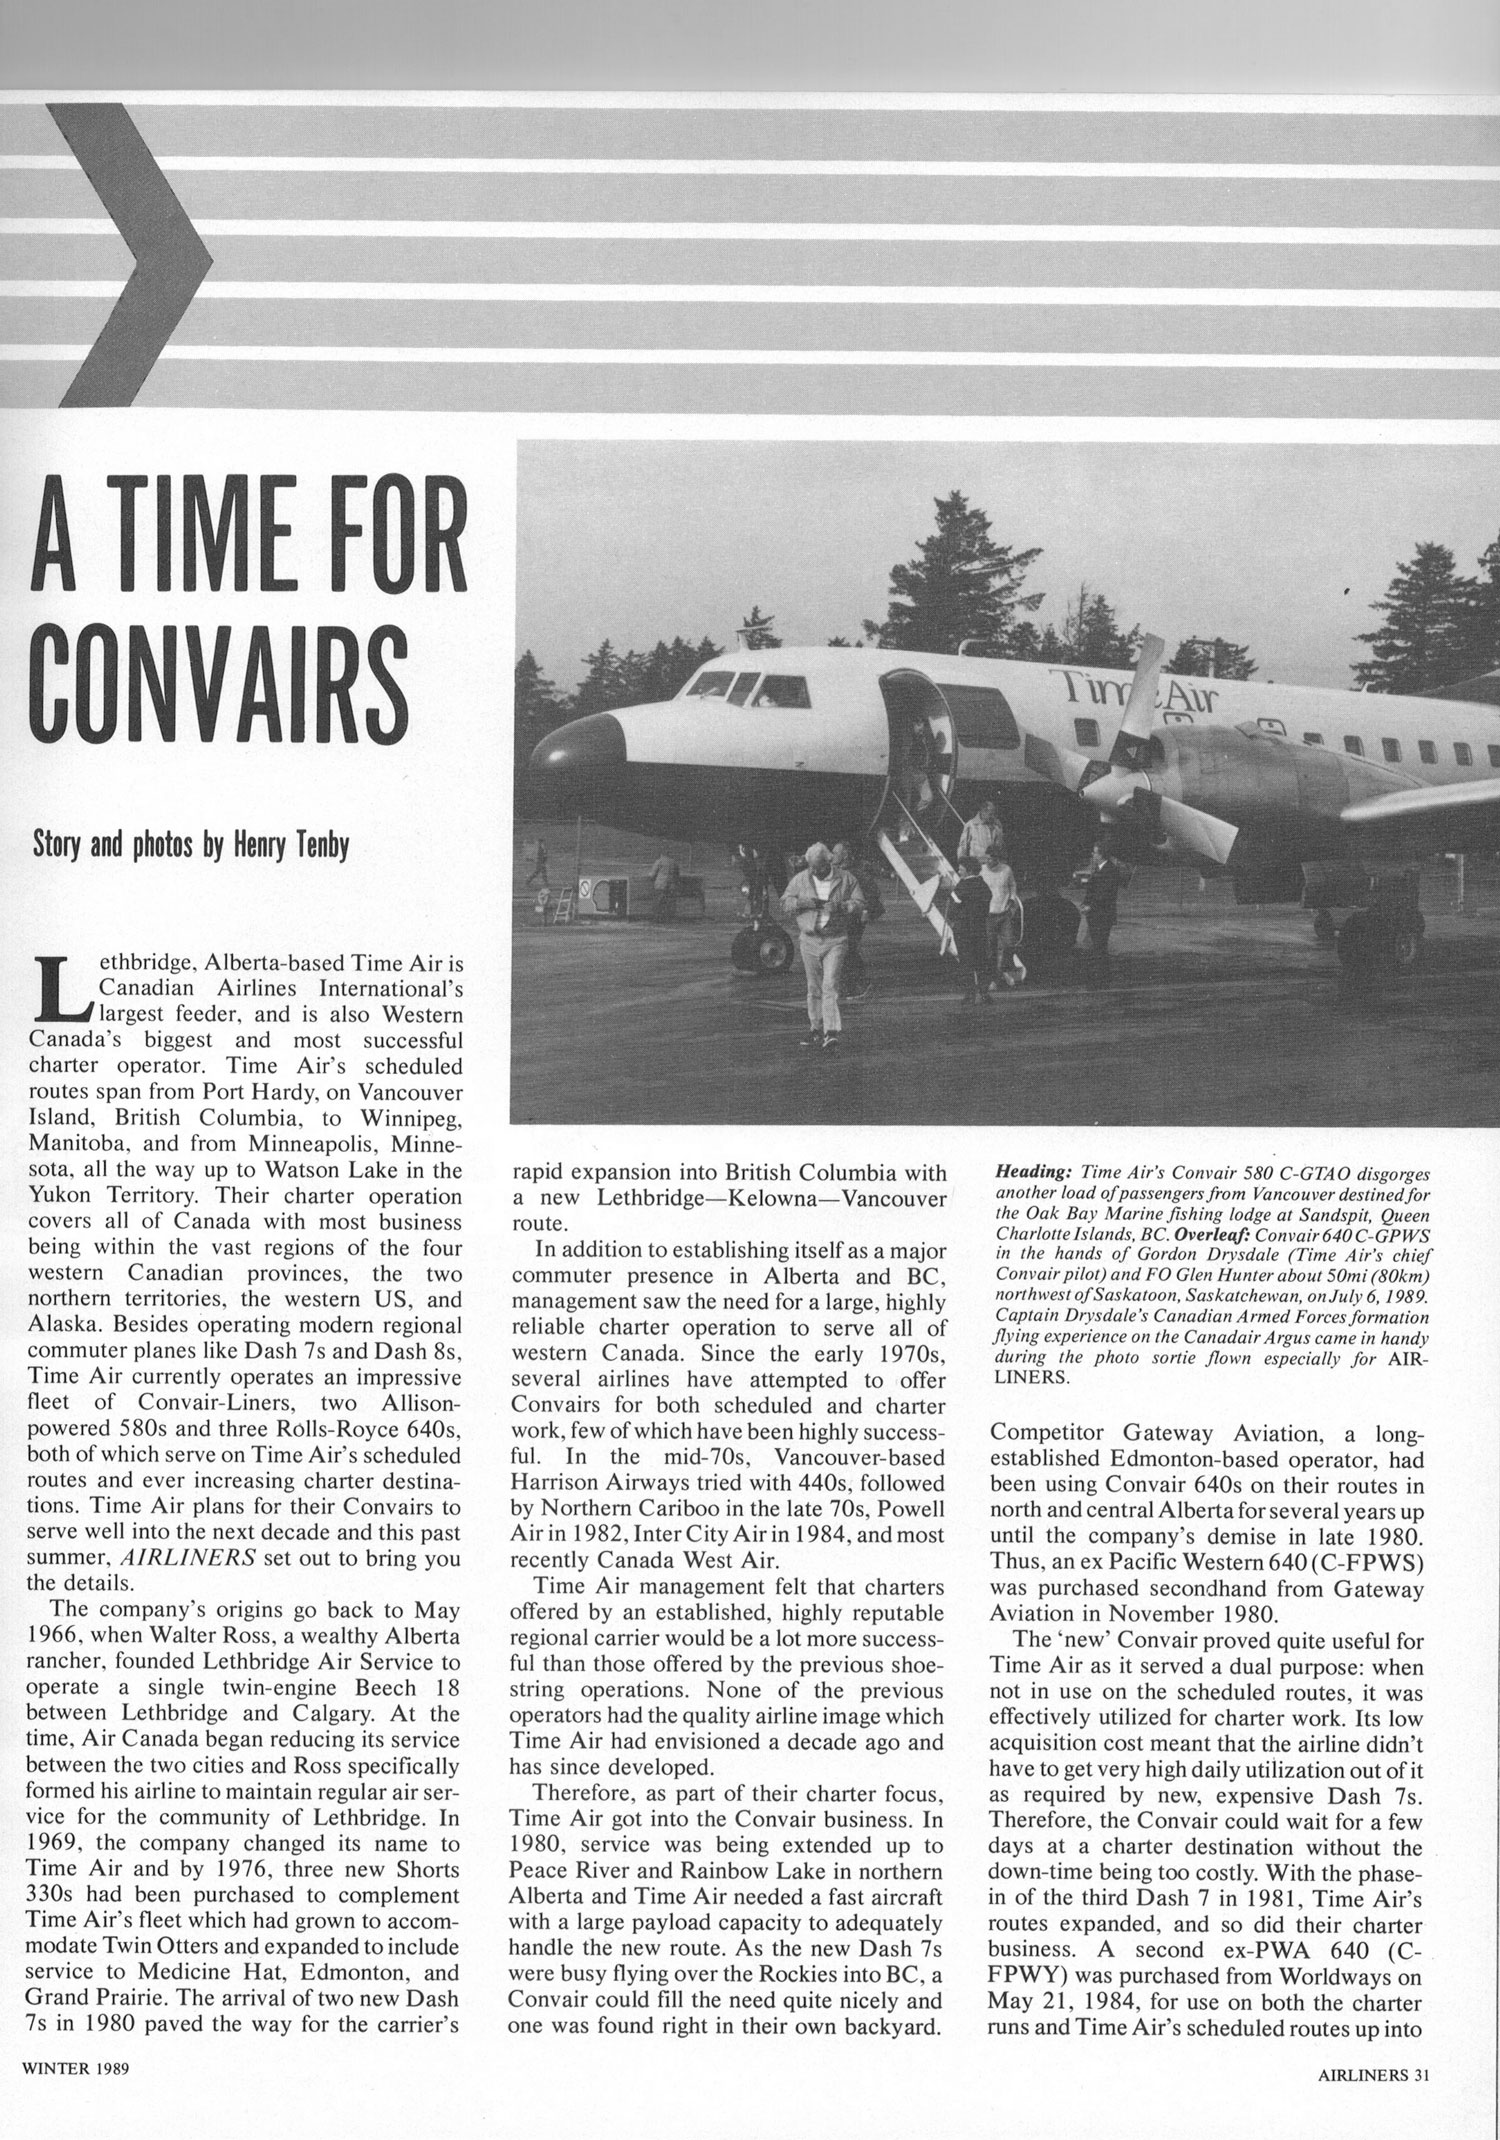 A Time for Convairs story and photos by Henry Tenby